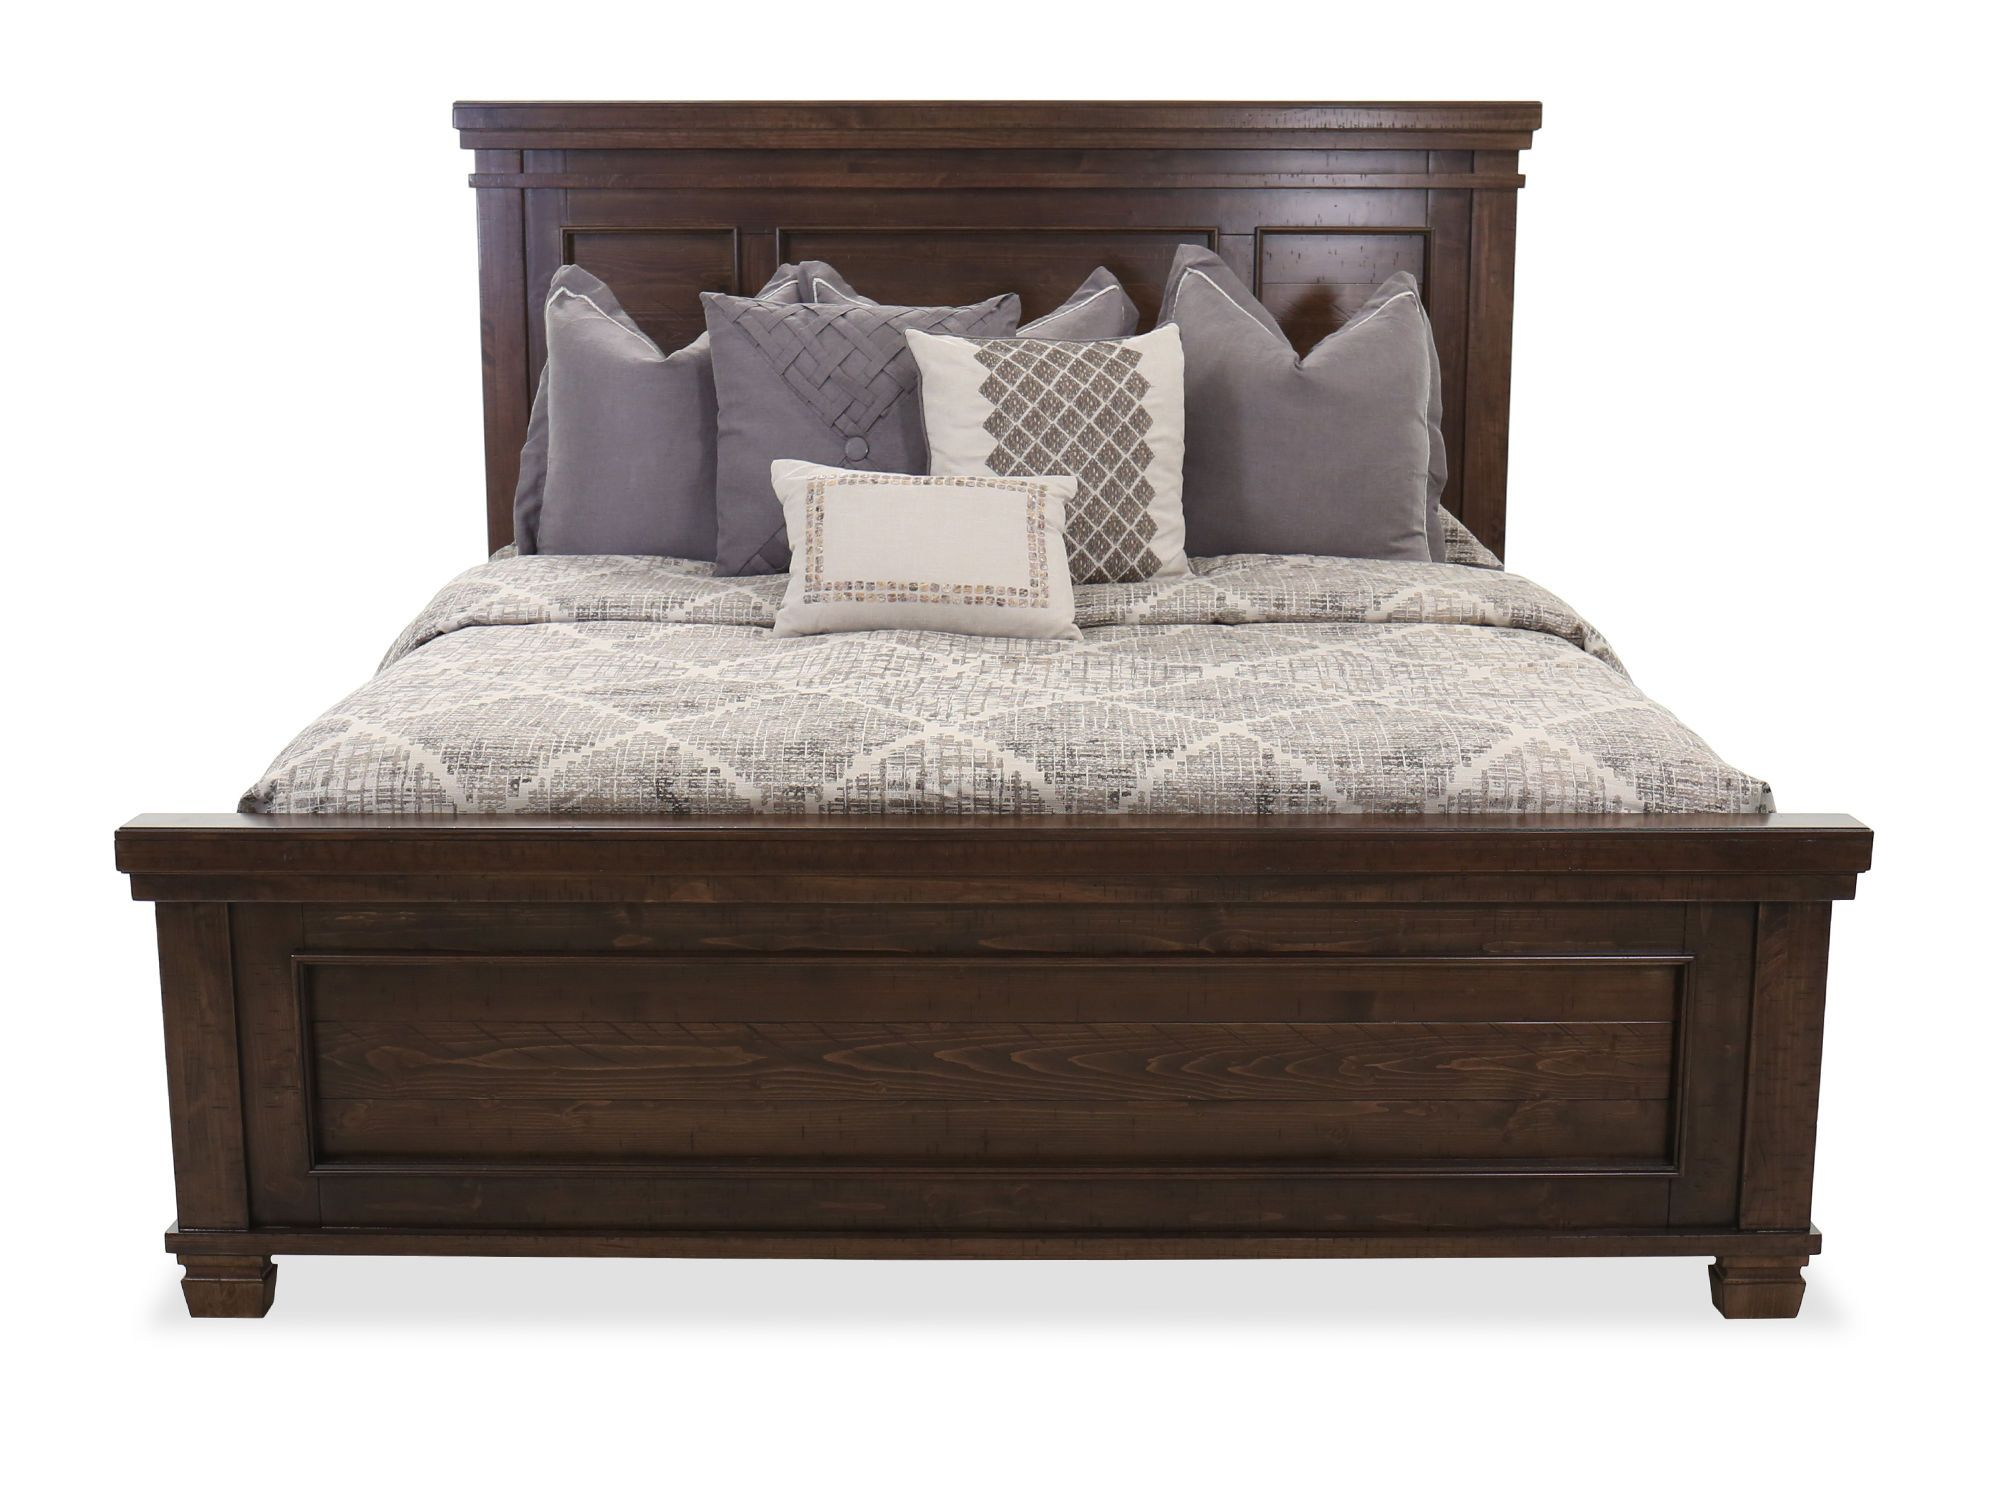 62'' Transitional Panel Bed in Brown Mathis Brothers